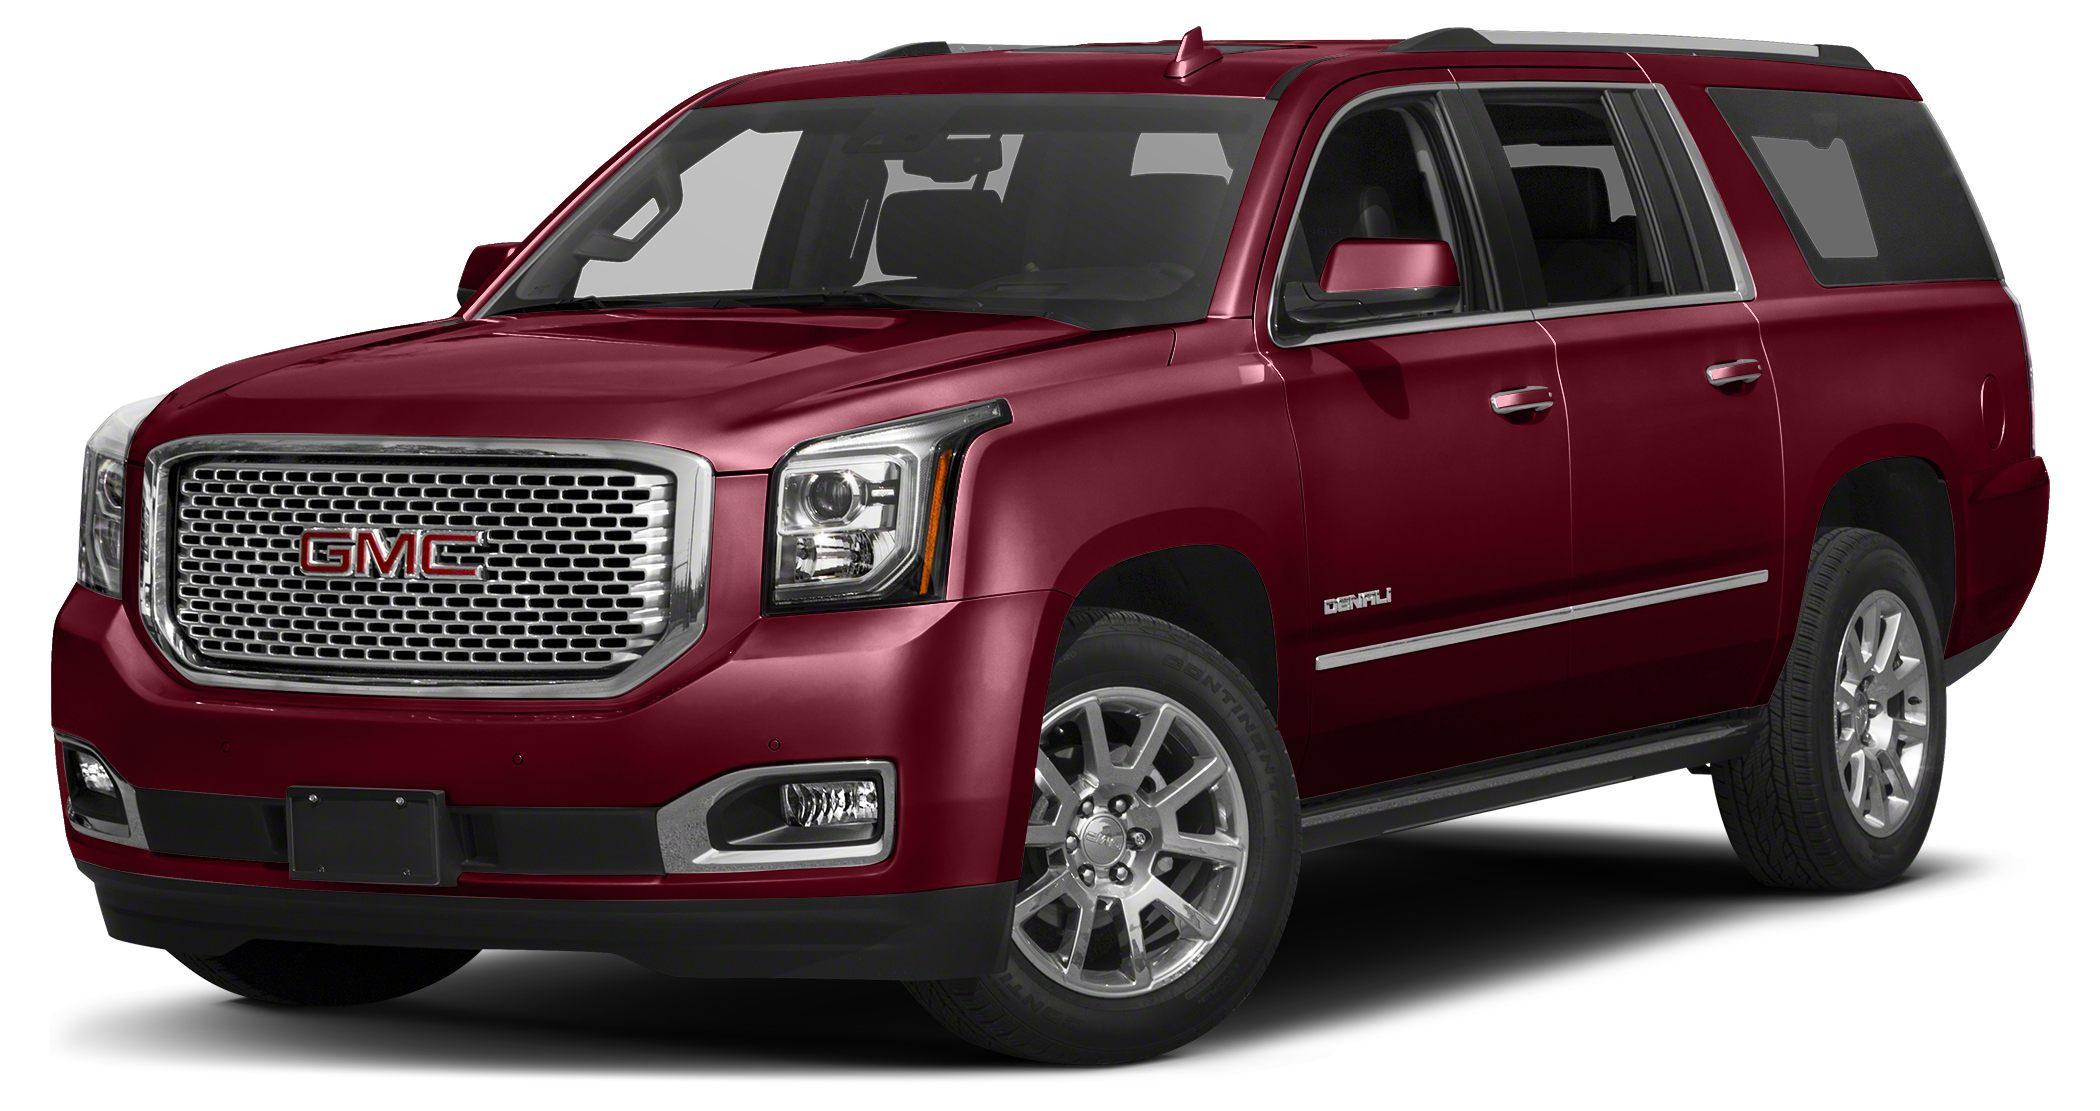 2018 GMC Yukon XL Denali Boasts 21 Highway MPG and 14 City MPG Miles 5Color Crimson Red Tintco